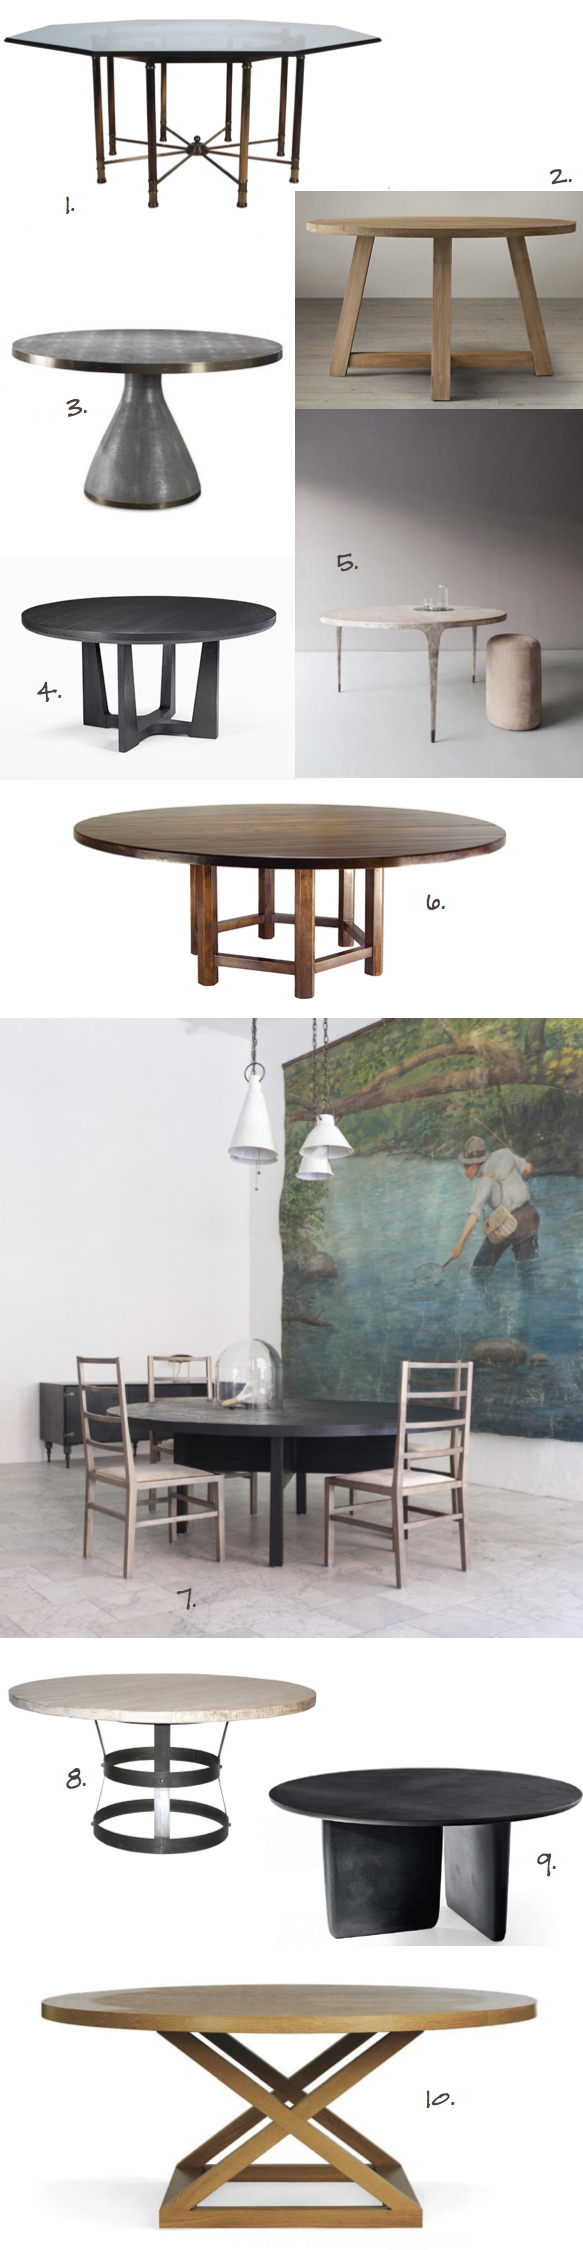 top ten round dining tables_Kristina Crestin Design